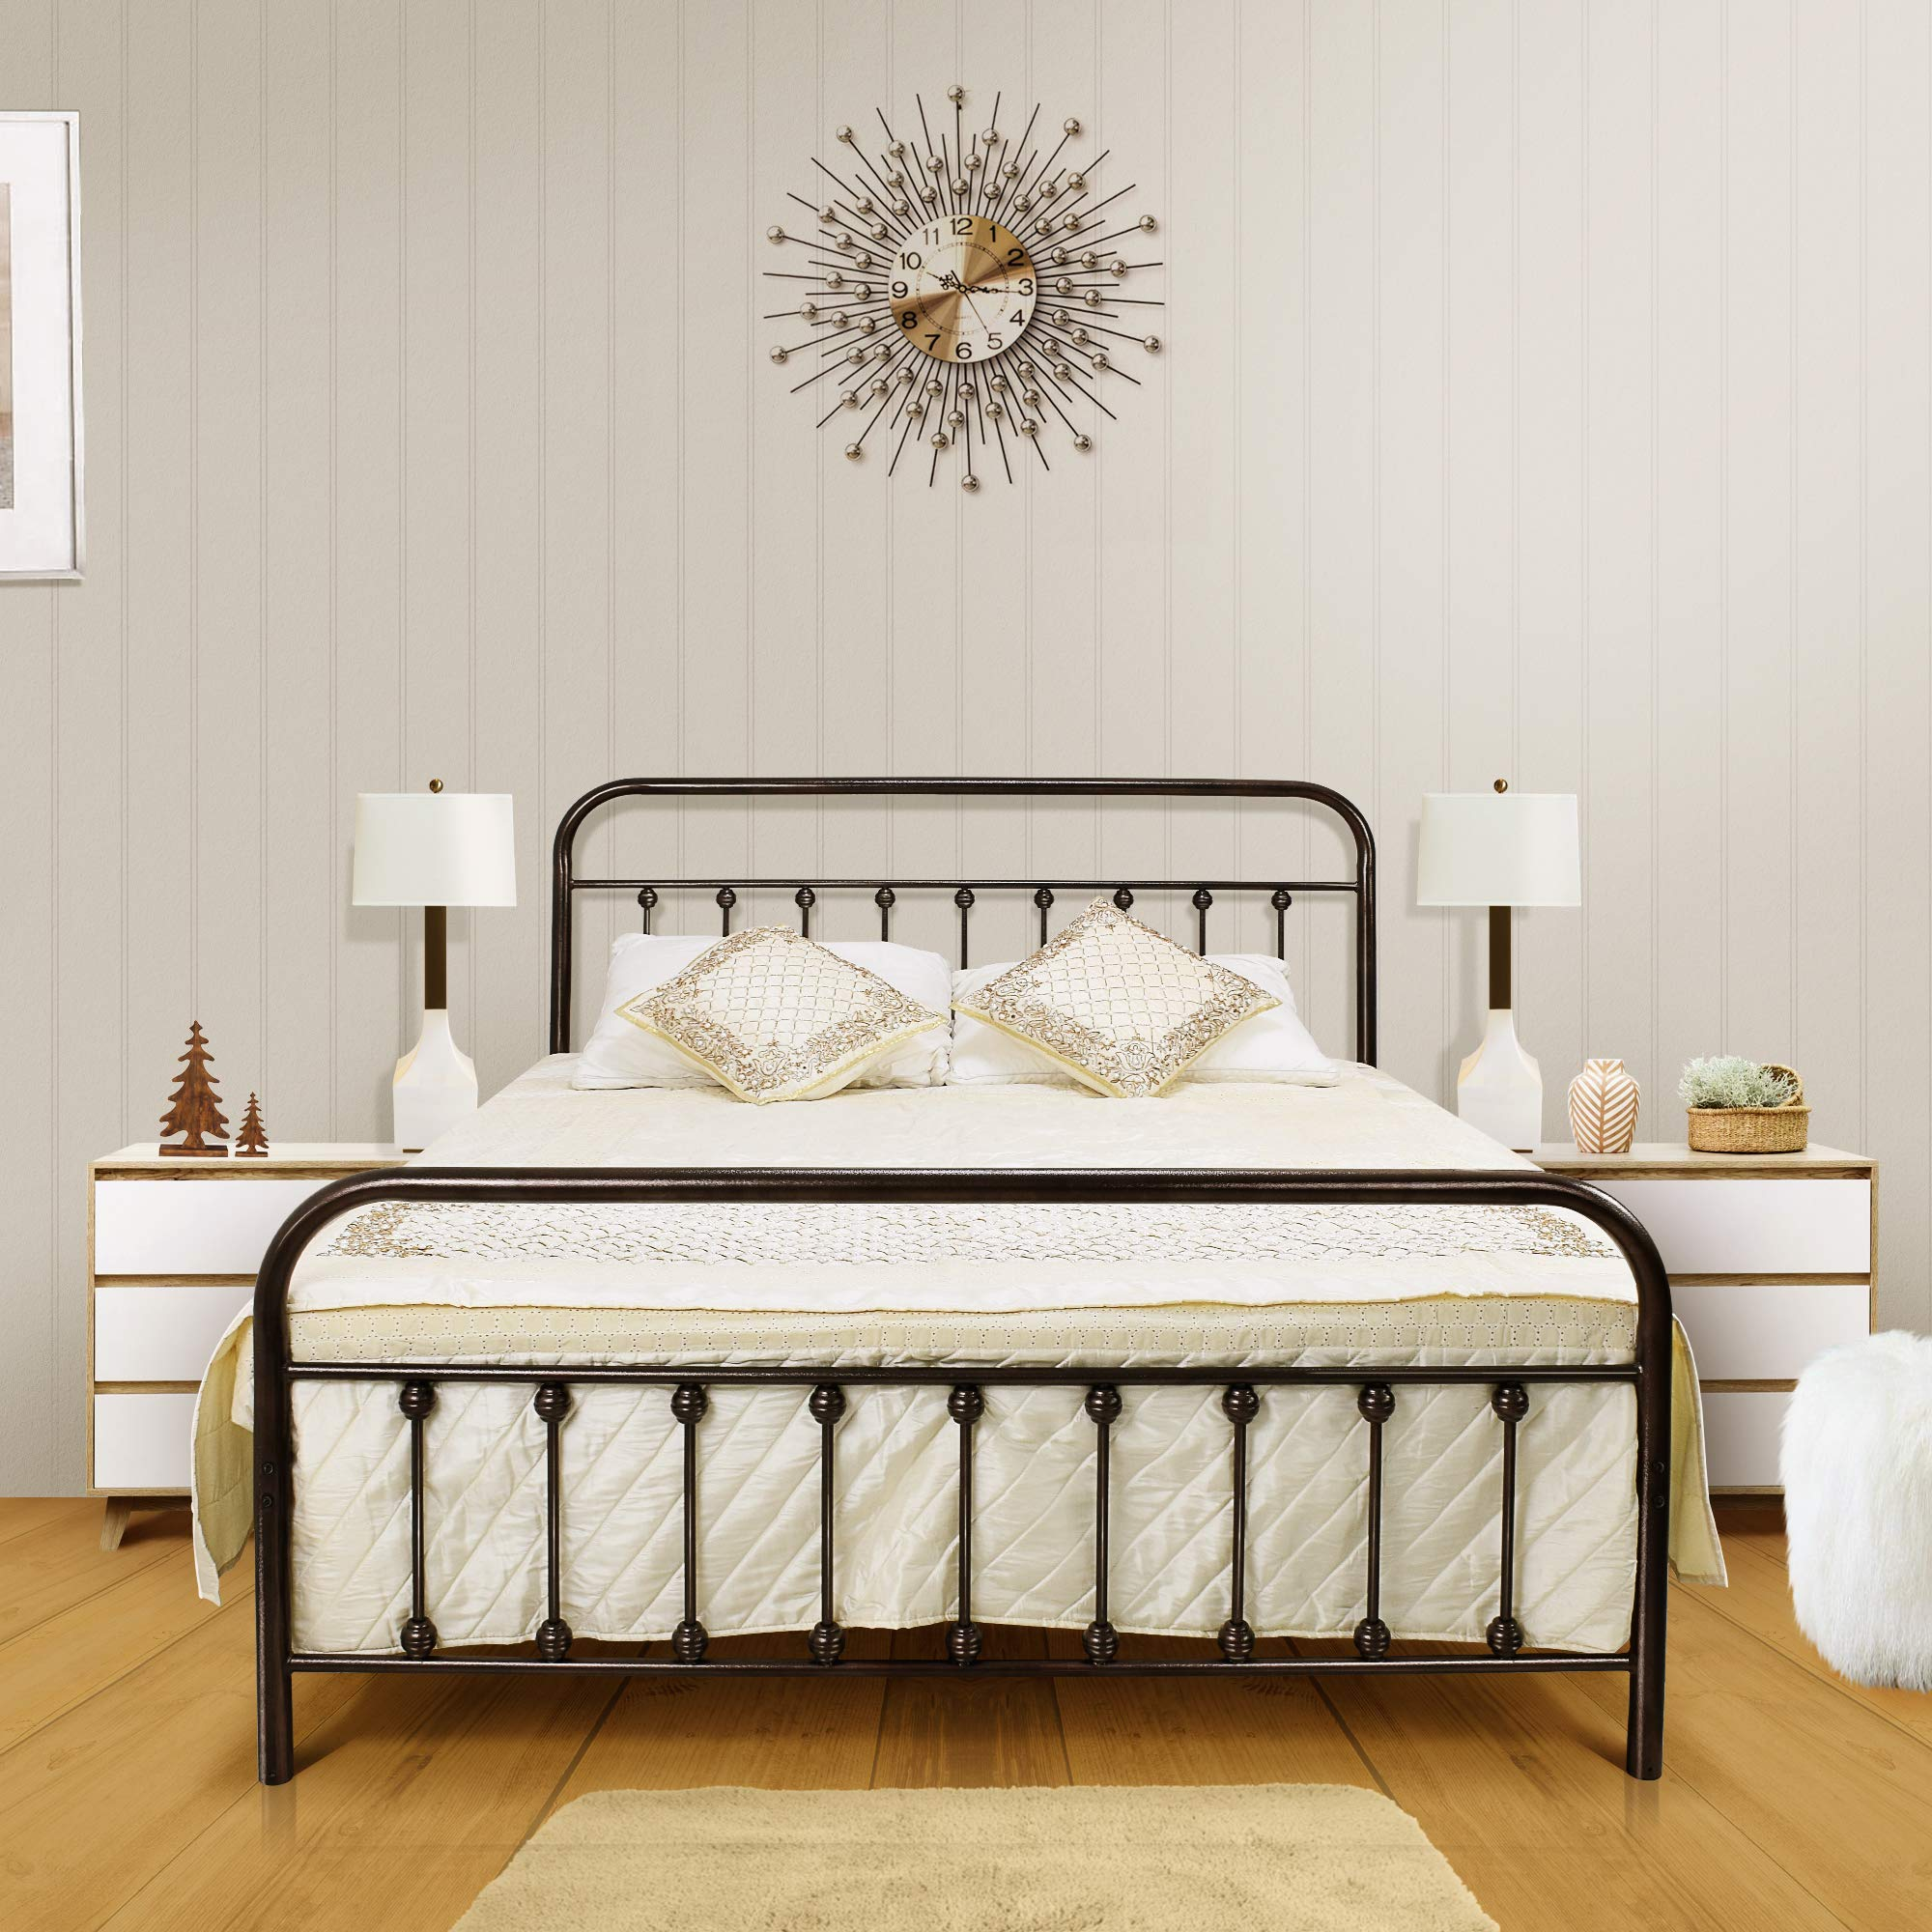 Ambee21 Queen Metal Bed Frame with Headboard and Footboard Set: Vintage Bed Frame, Sturdy Support Mattress Foundation, No Box Spring Required, Under Bed Storage, Steel Slat Support, Easy Assembly